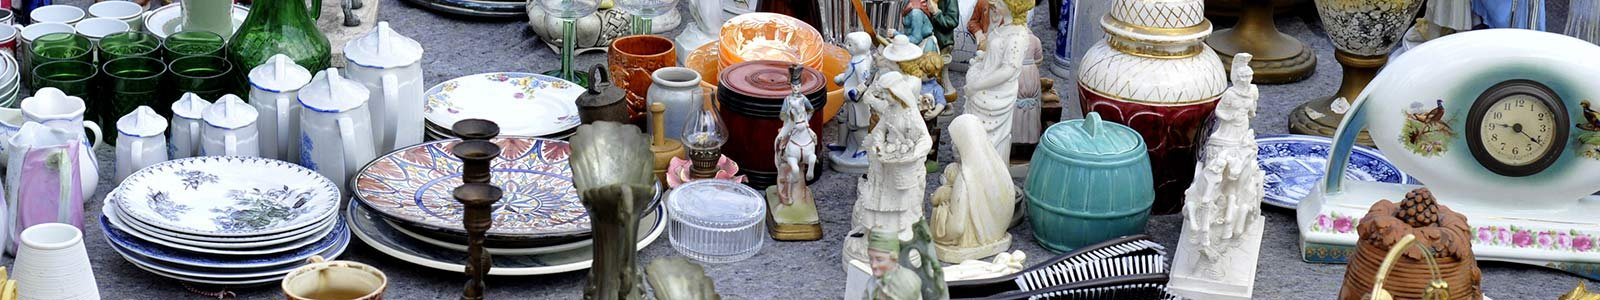 Antiques near Woodrow House